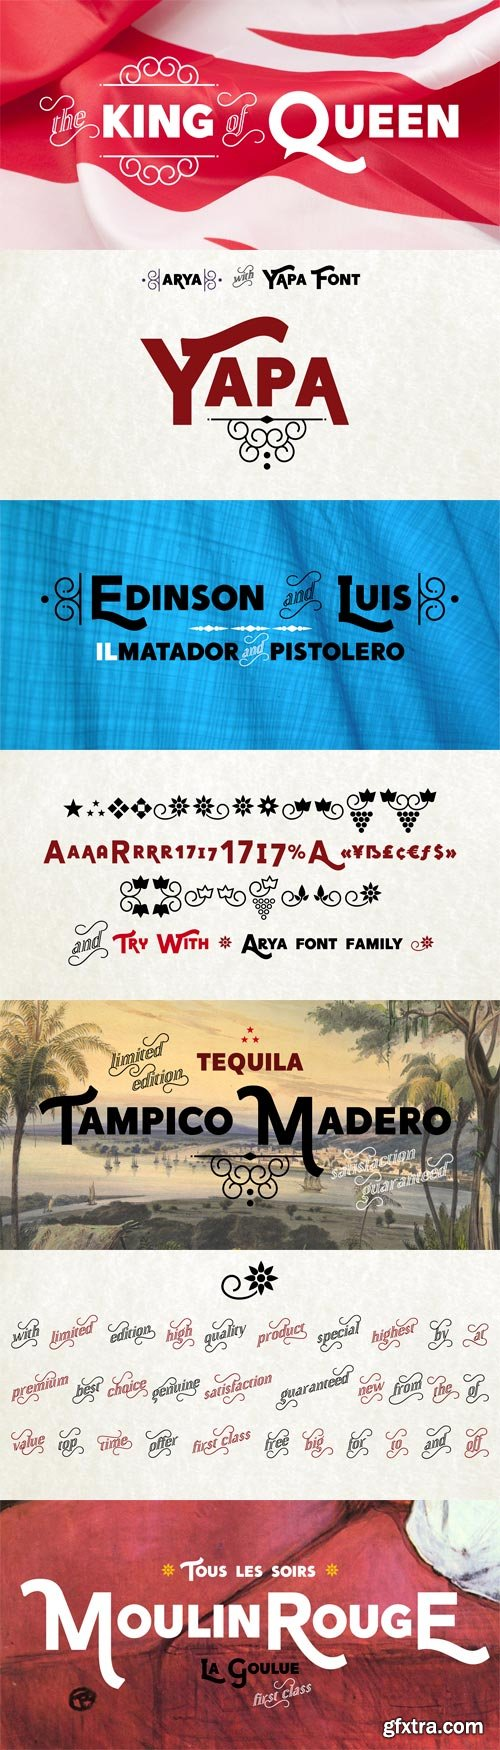 Yapa Font Family - 2 Fonts for $50